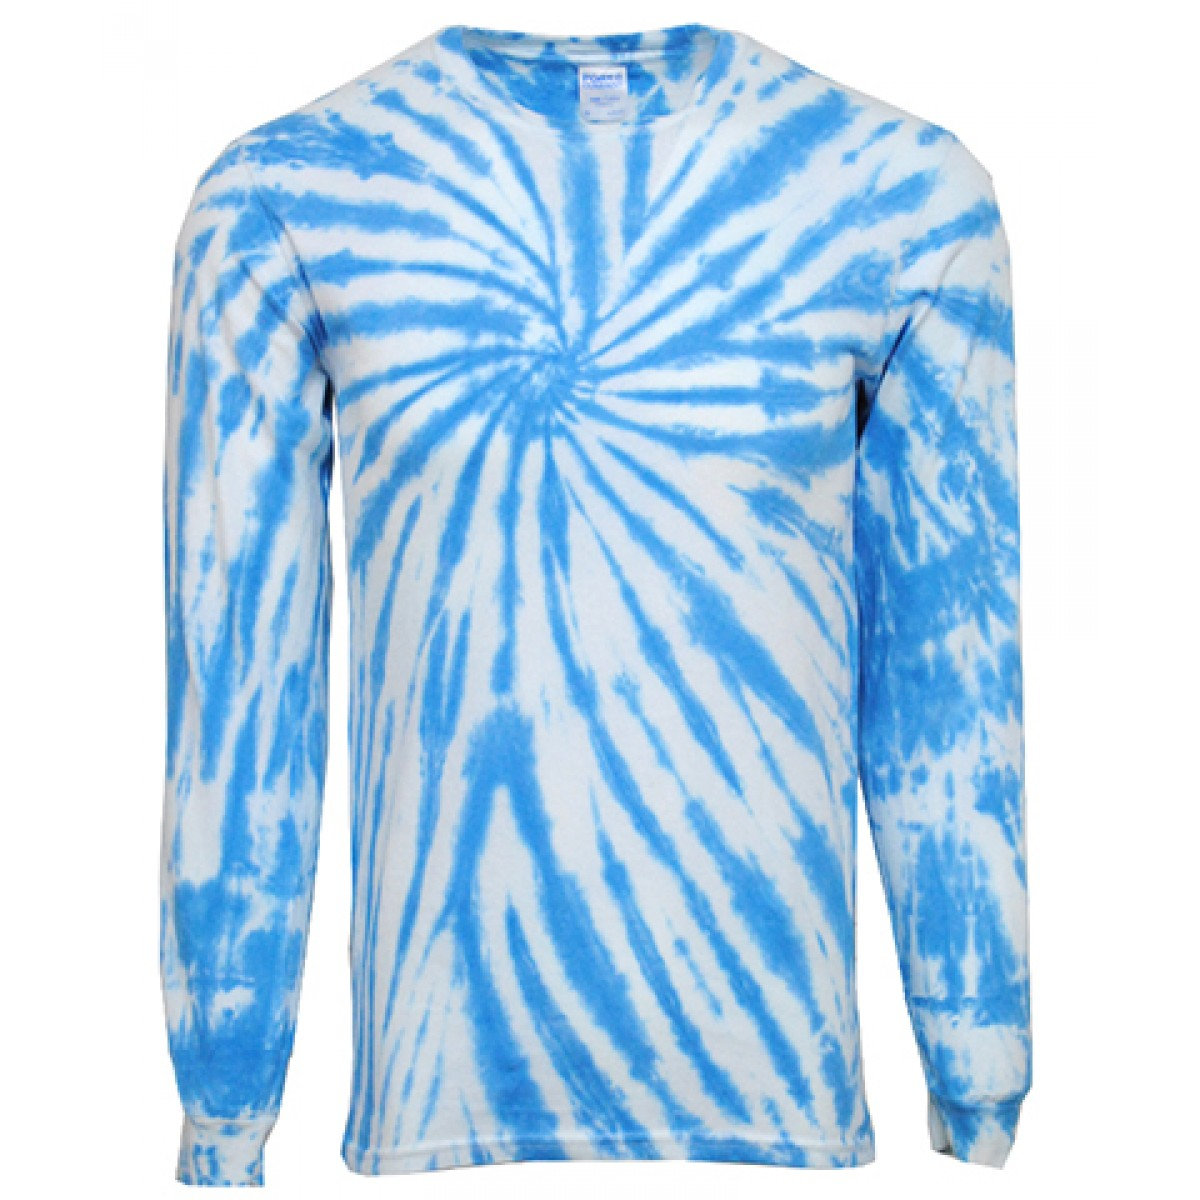 Tie-Dye Long Sleeve Shirts